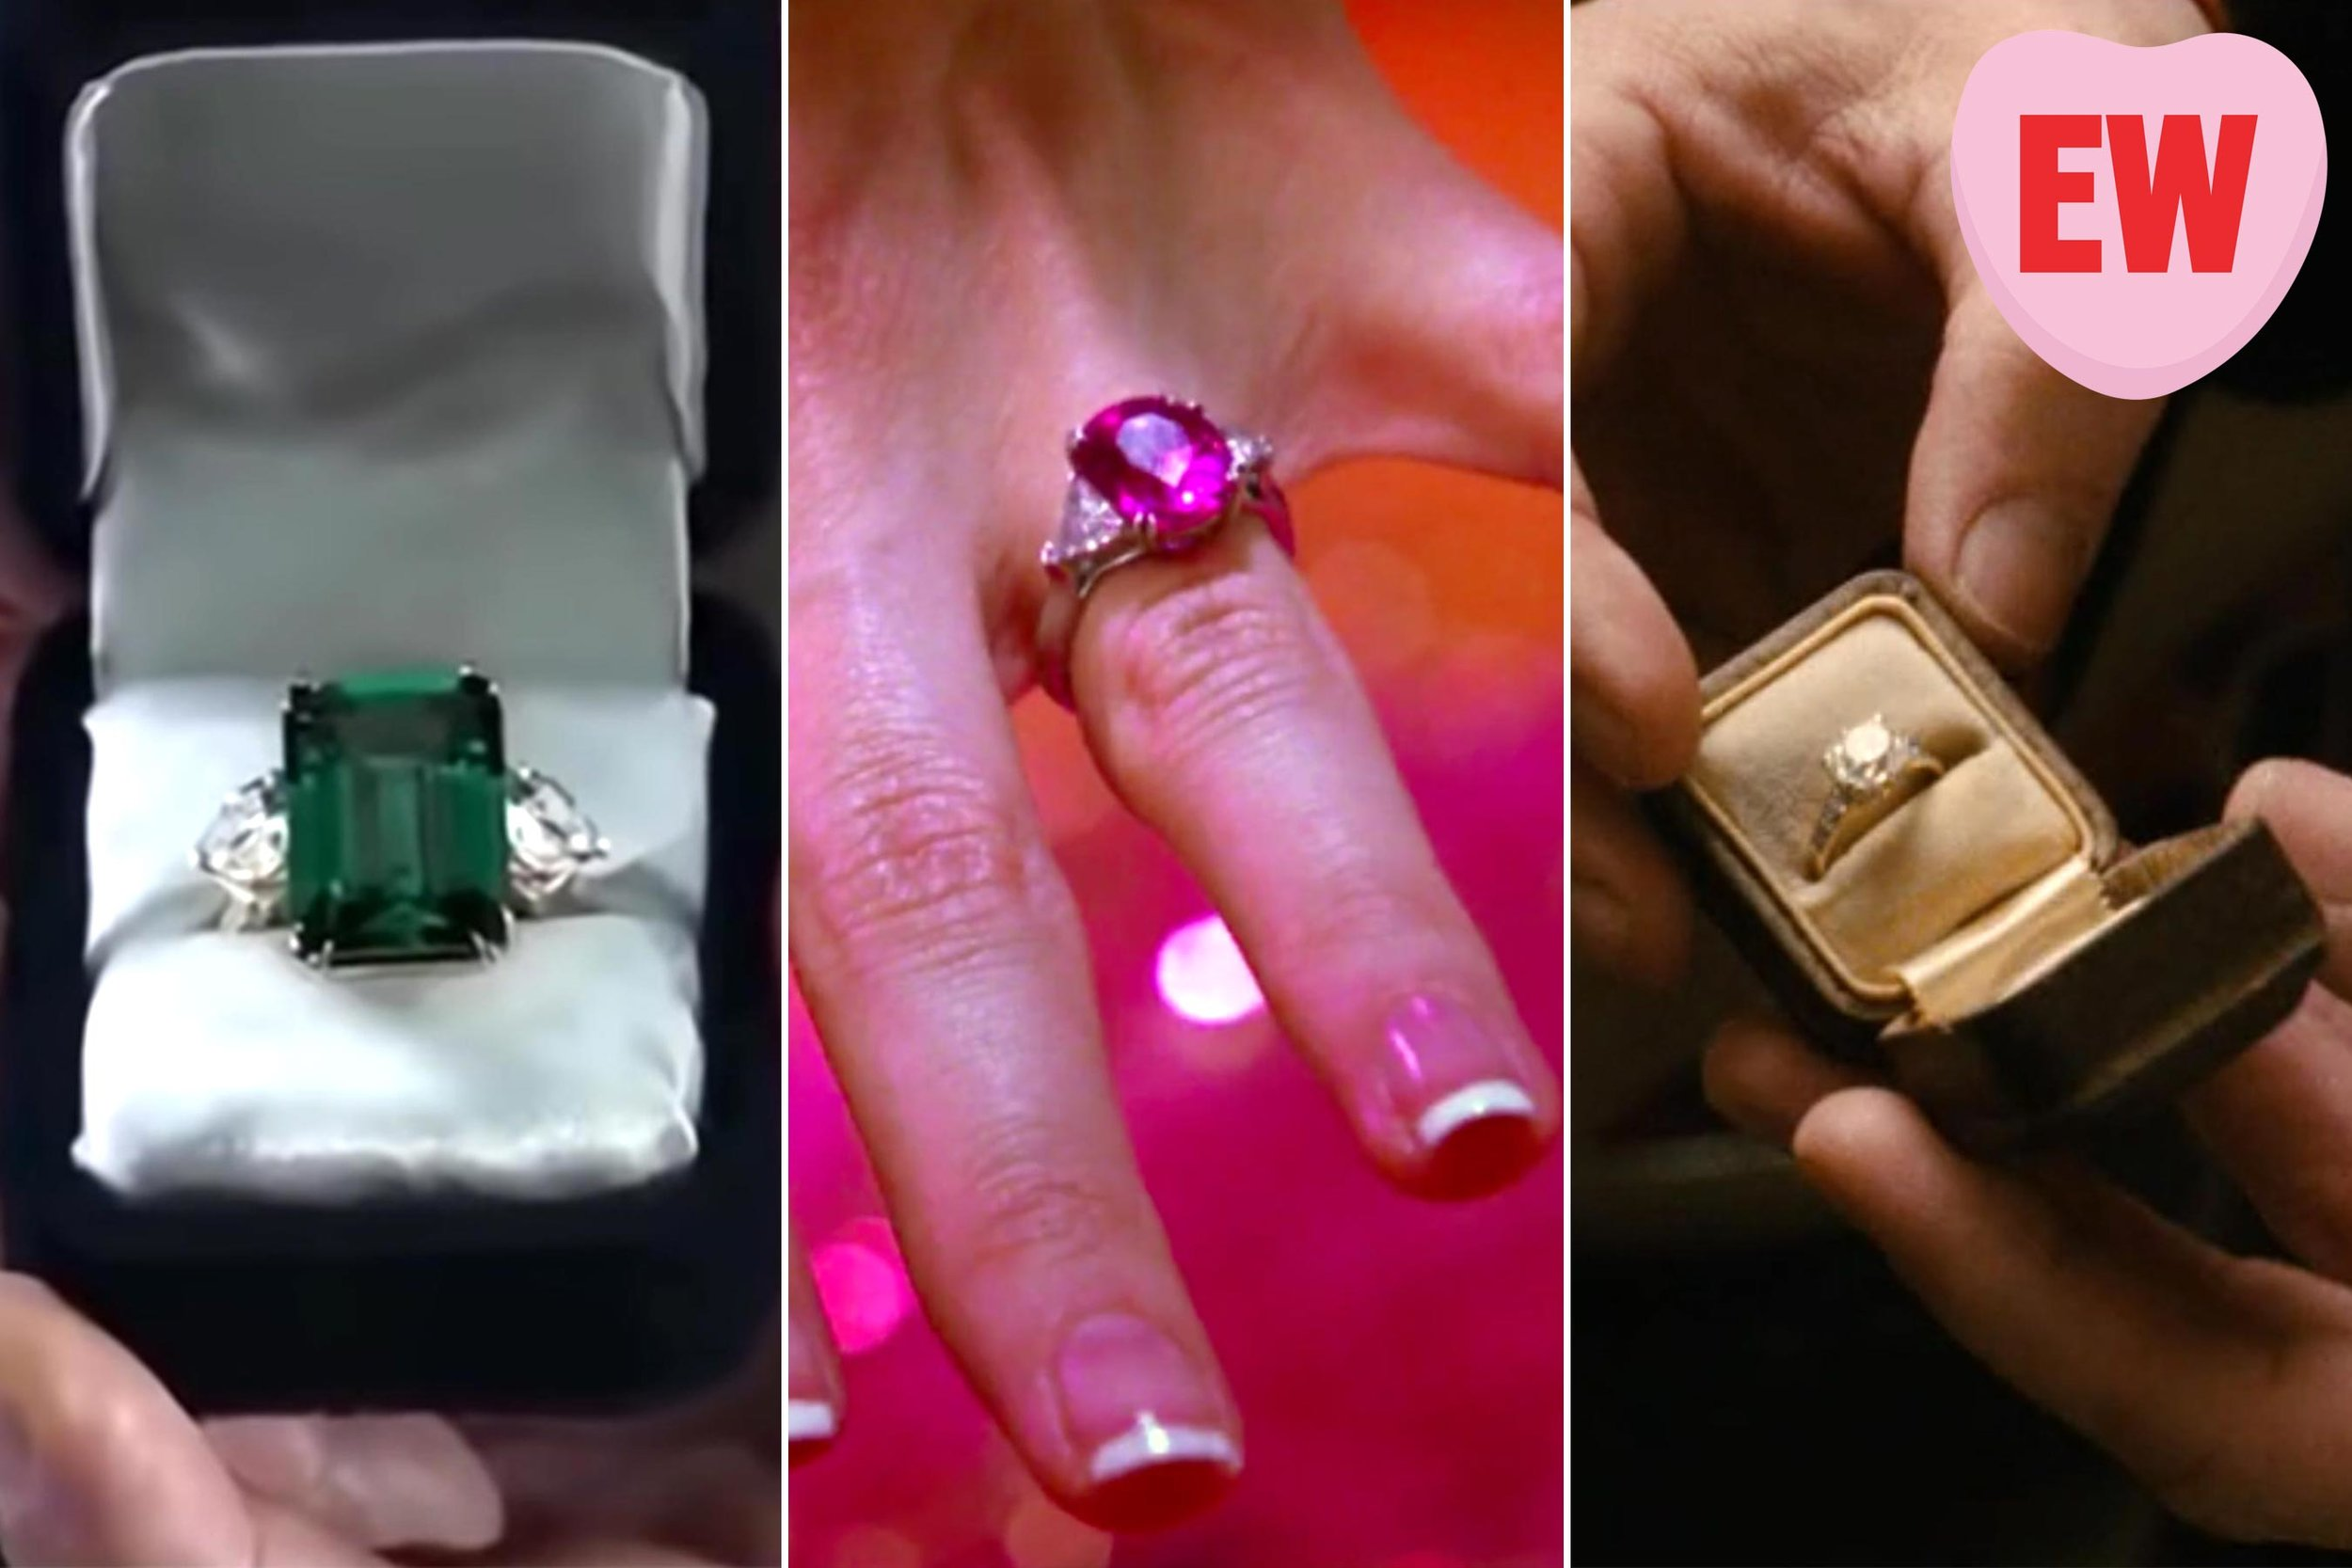 Entertainment Weekly: The 8 best rom-com engagement rings, appraised by The Bachelor jeweler Neil Lane • February 13, 2019